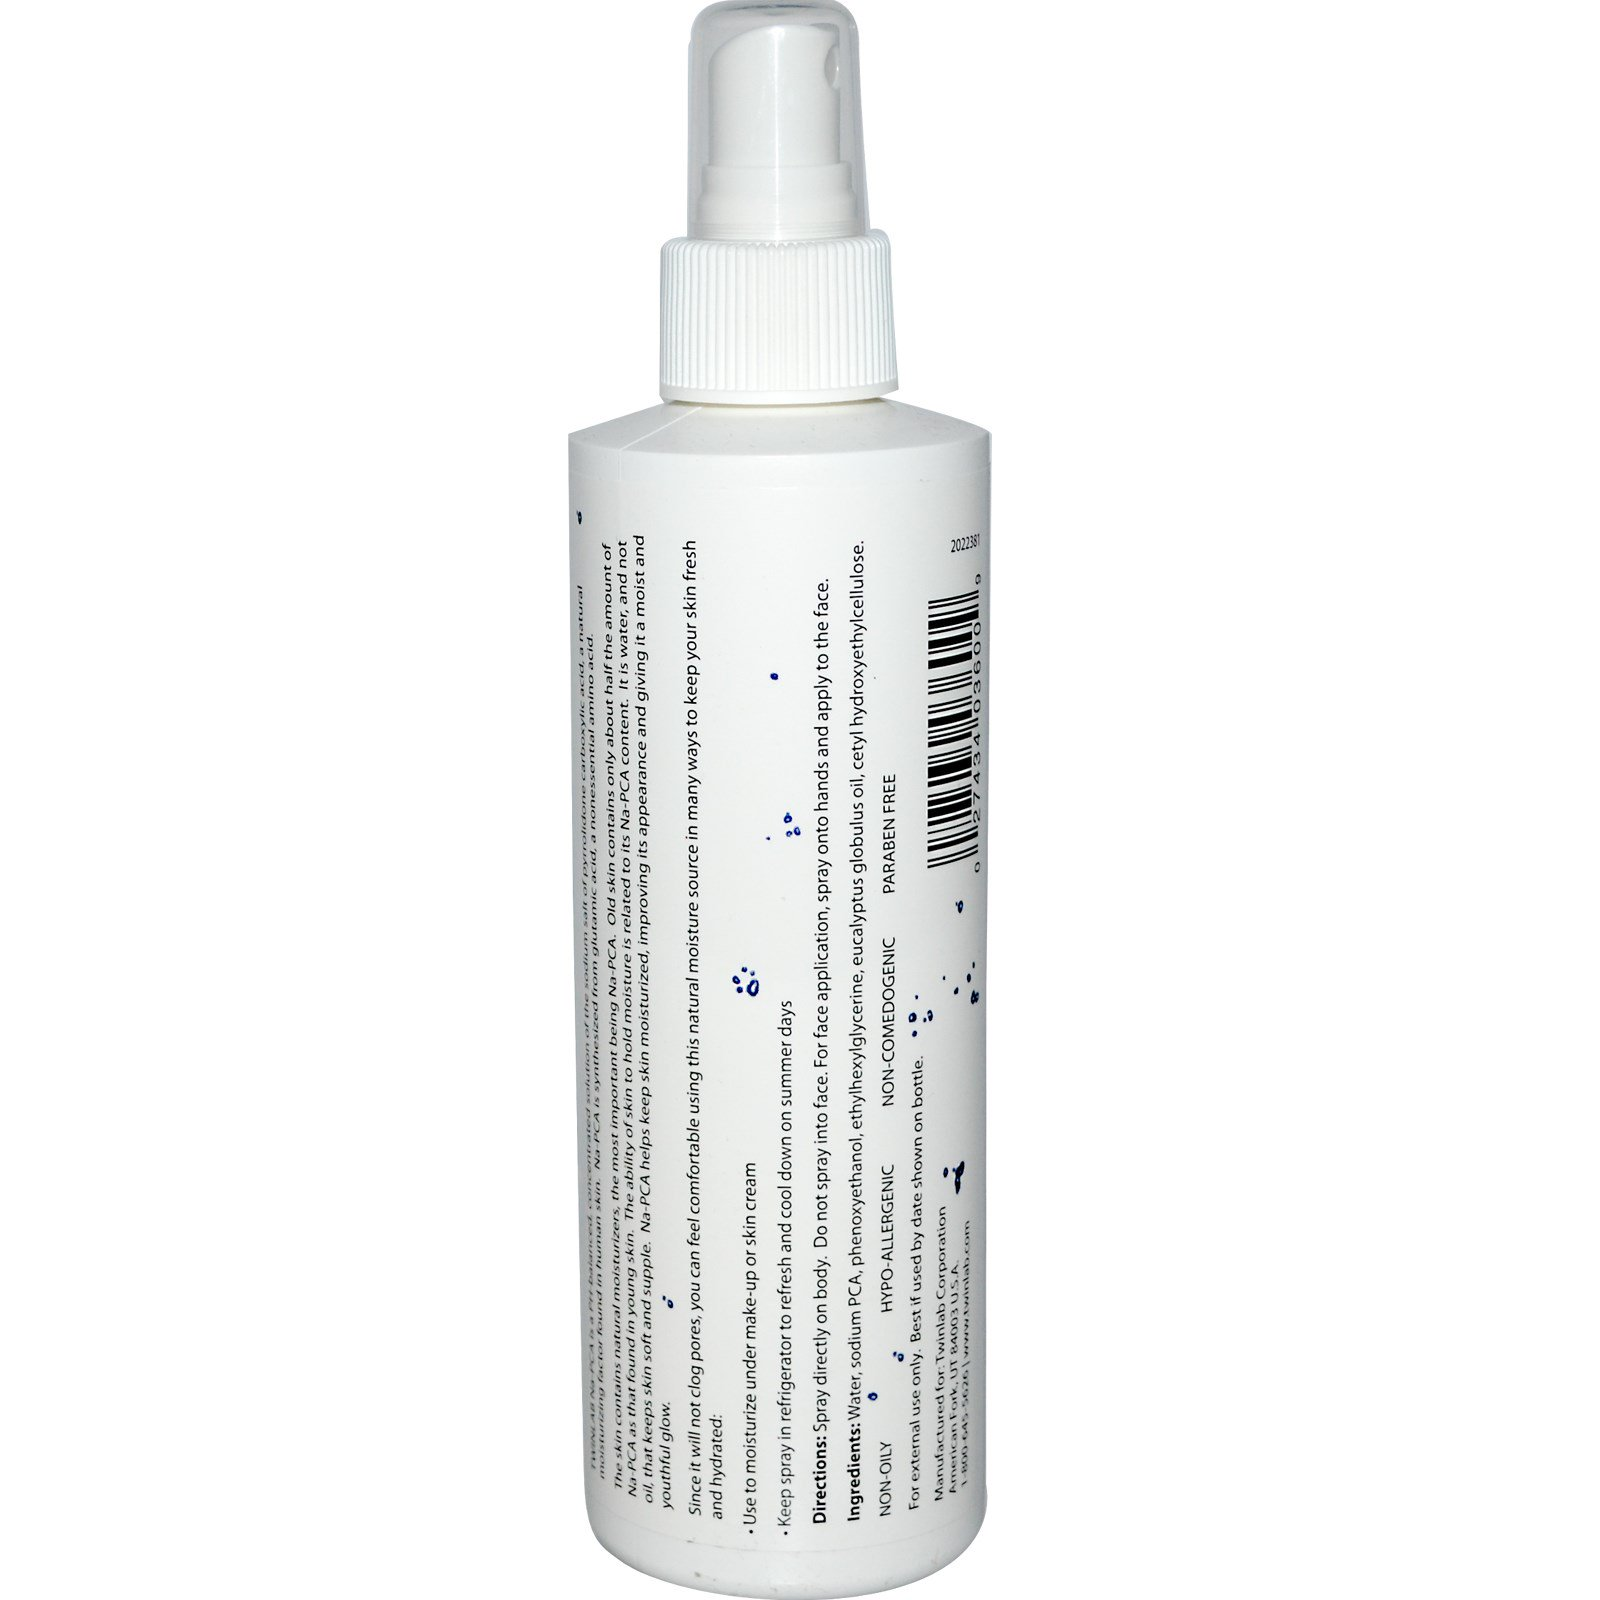 Twinlab Na Pca For Face And Body 8 Fl Oz 237 Ml Napca Moist Click To Zoom